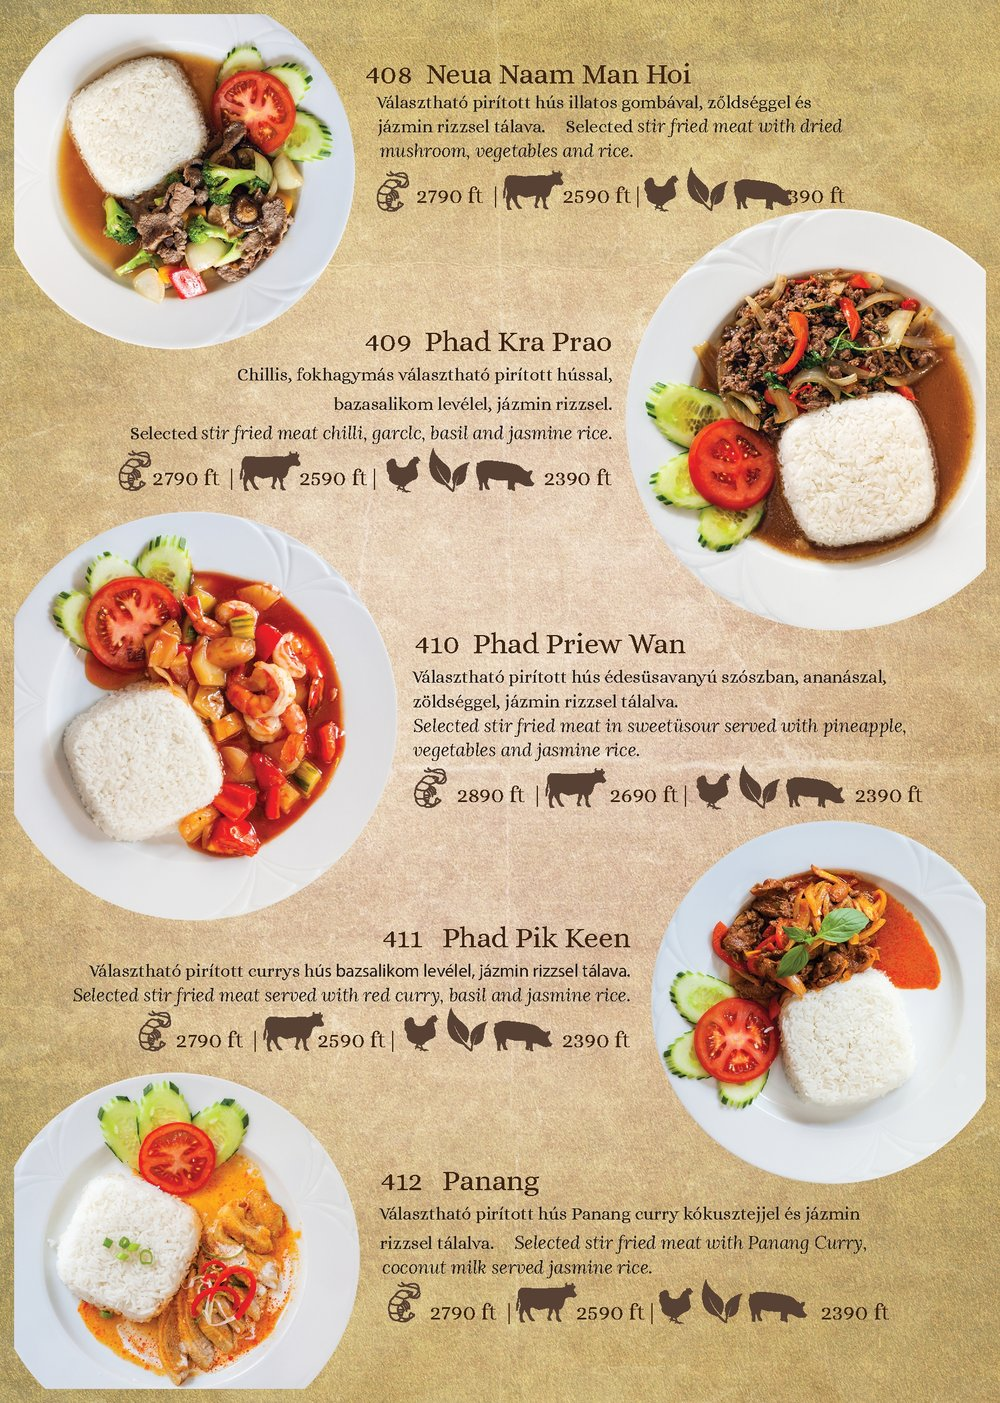 4.Sawasdee_menu_book-main_dish.2018.3.jpg